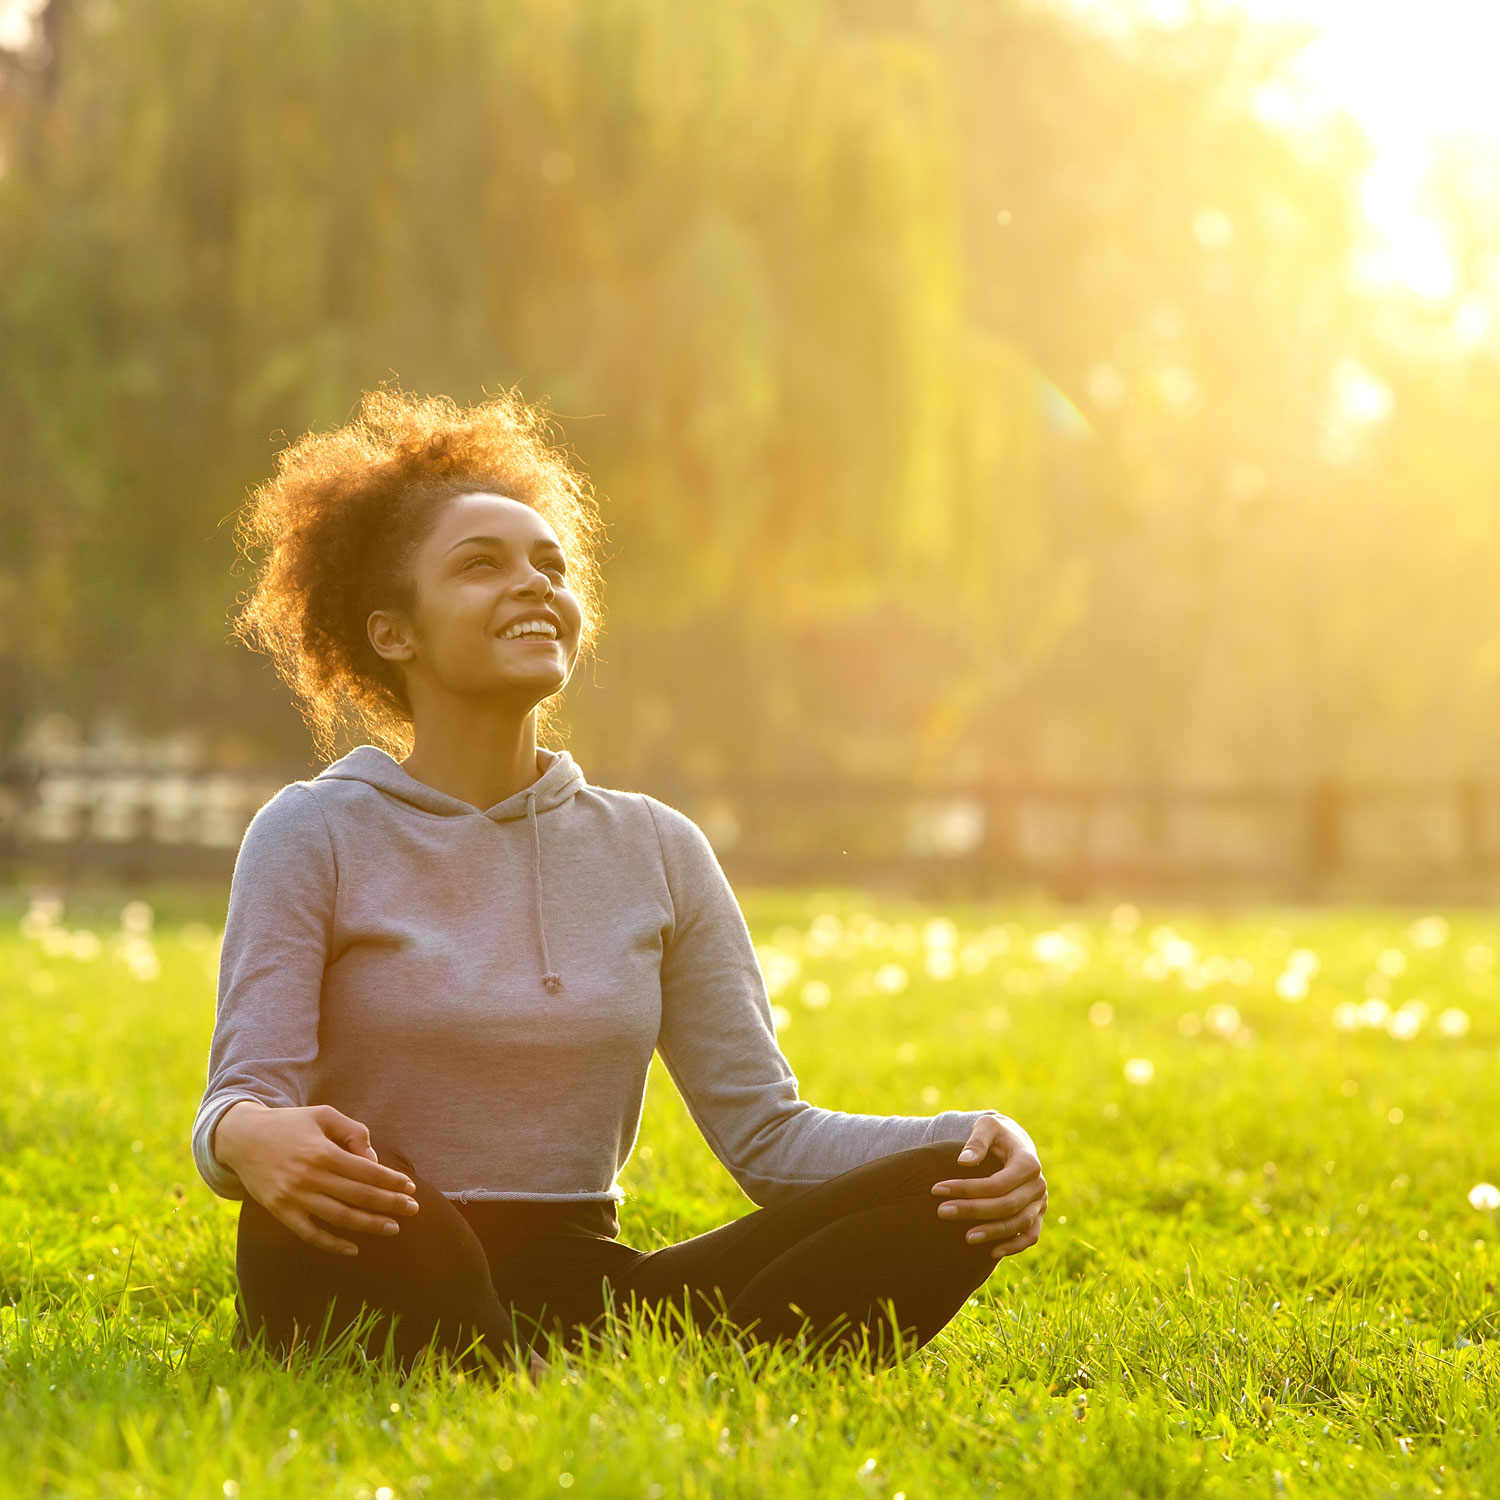 being outside in nature mental health benefits